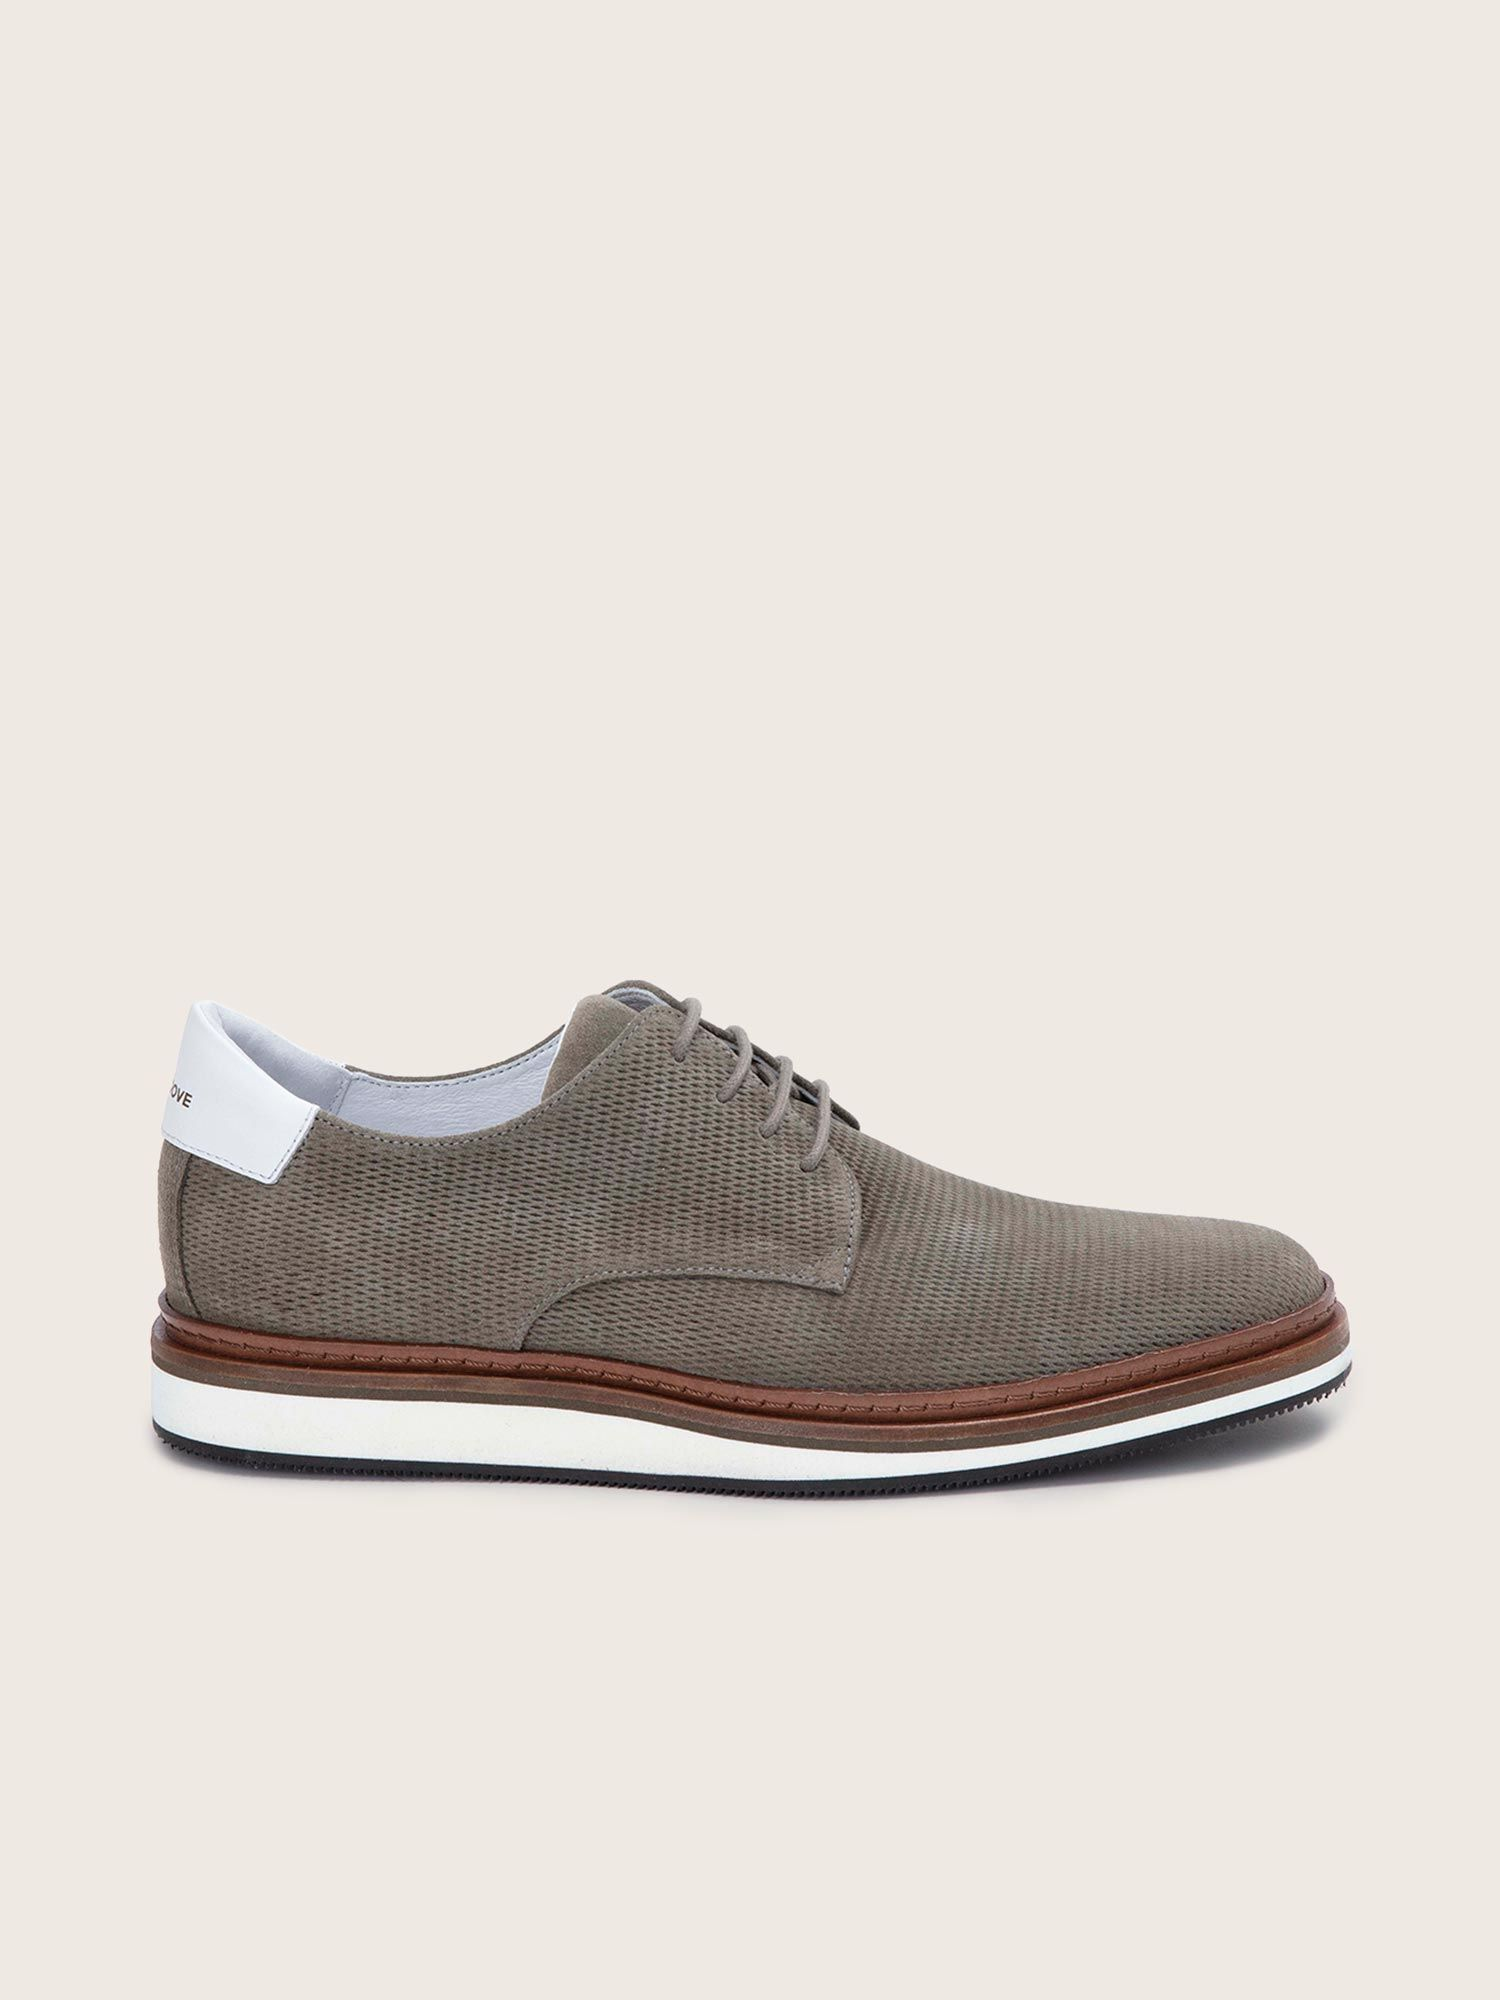 schmoove.fr PUNCH DERBY - P.SUEDE/NAPPA - ELEPHANT/WHITE